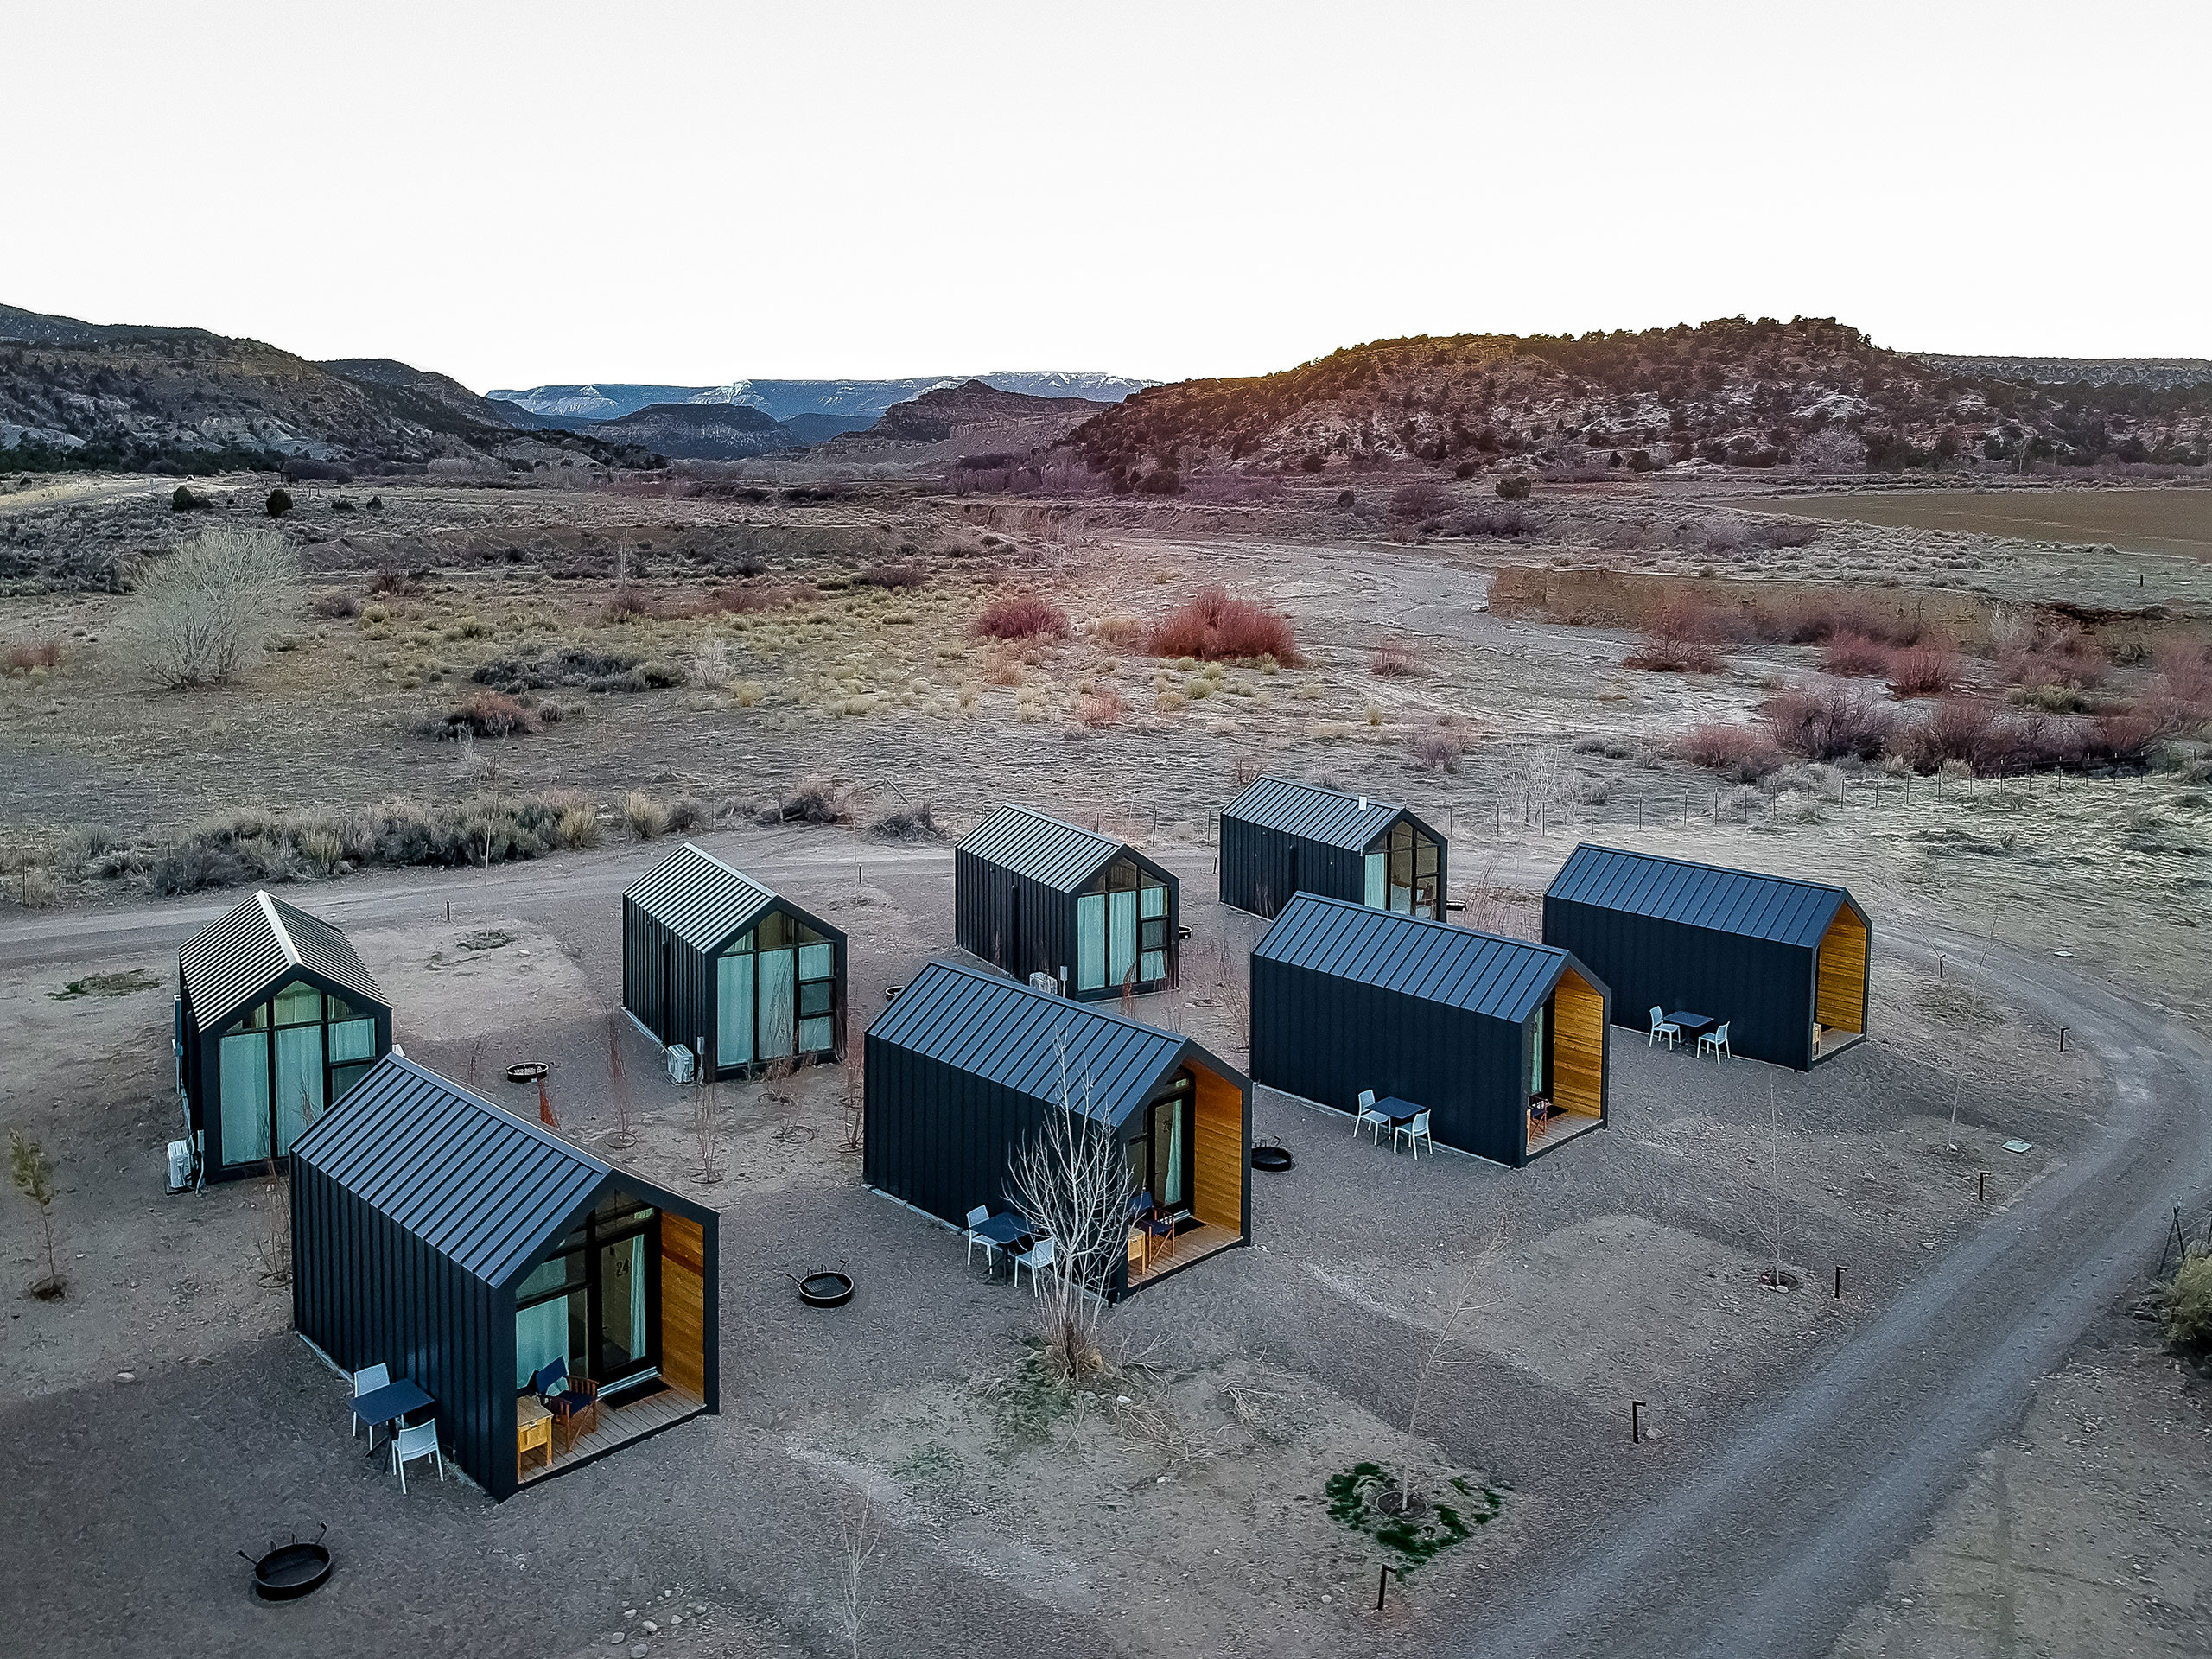 Cabins.Photography by Aleks Danielle Butman.